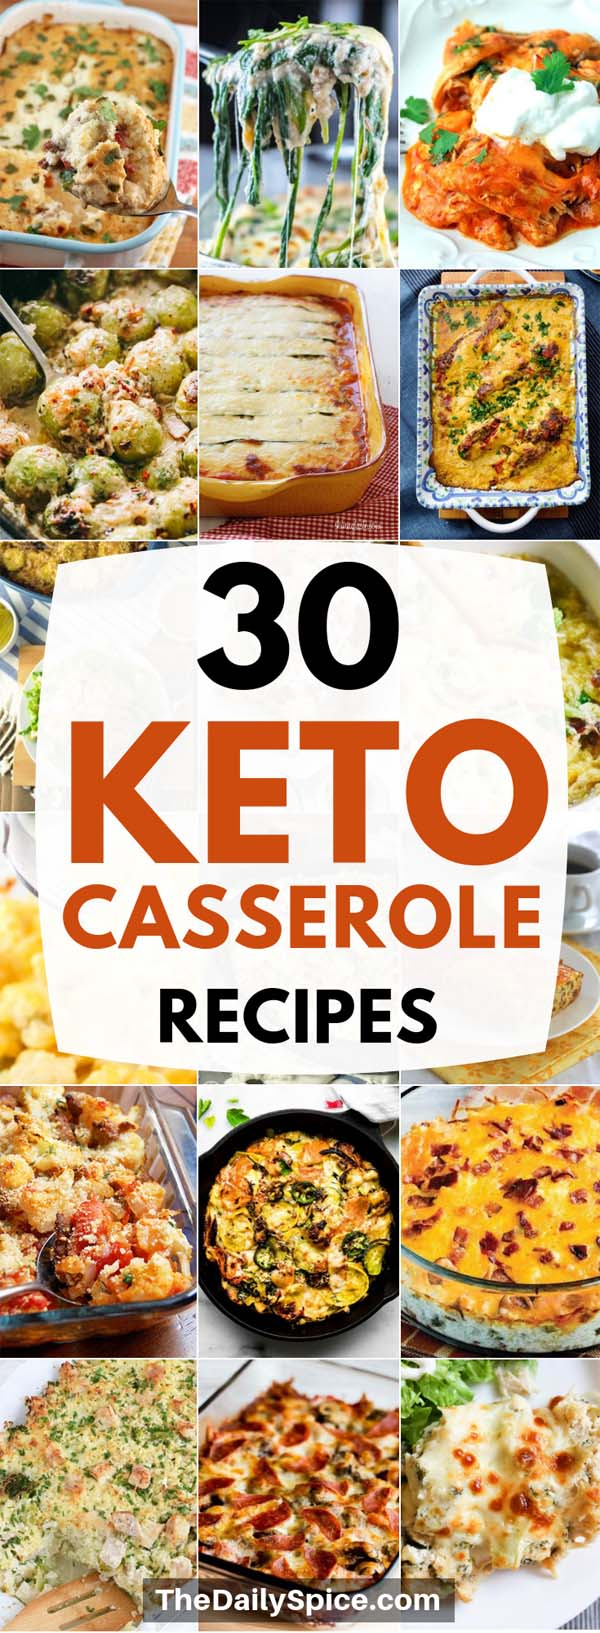 Keto Casserole Recipes